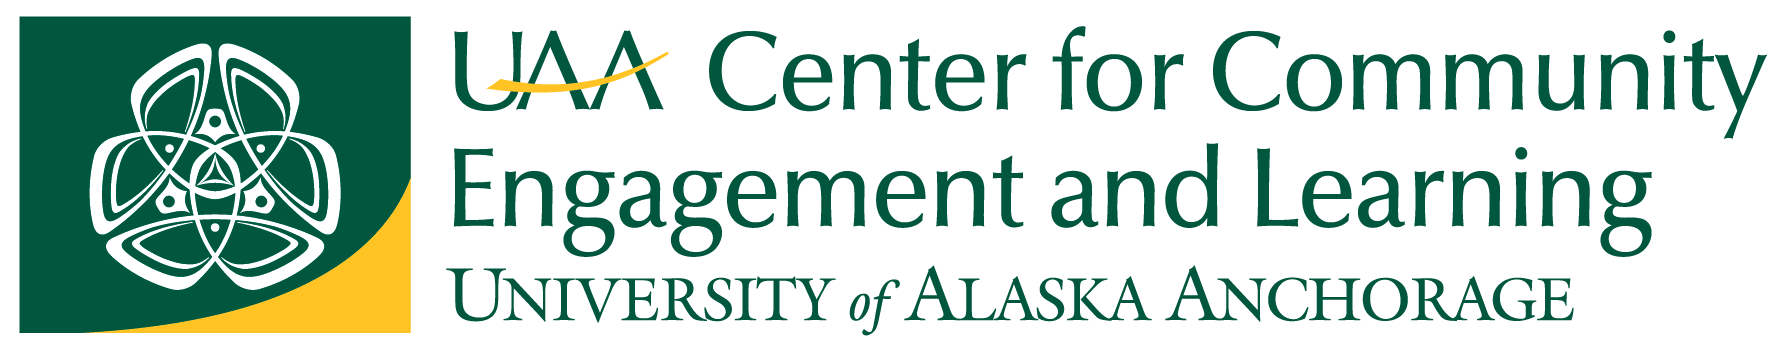 UAA Center for Community Engagement & Learning Logo